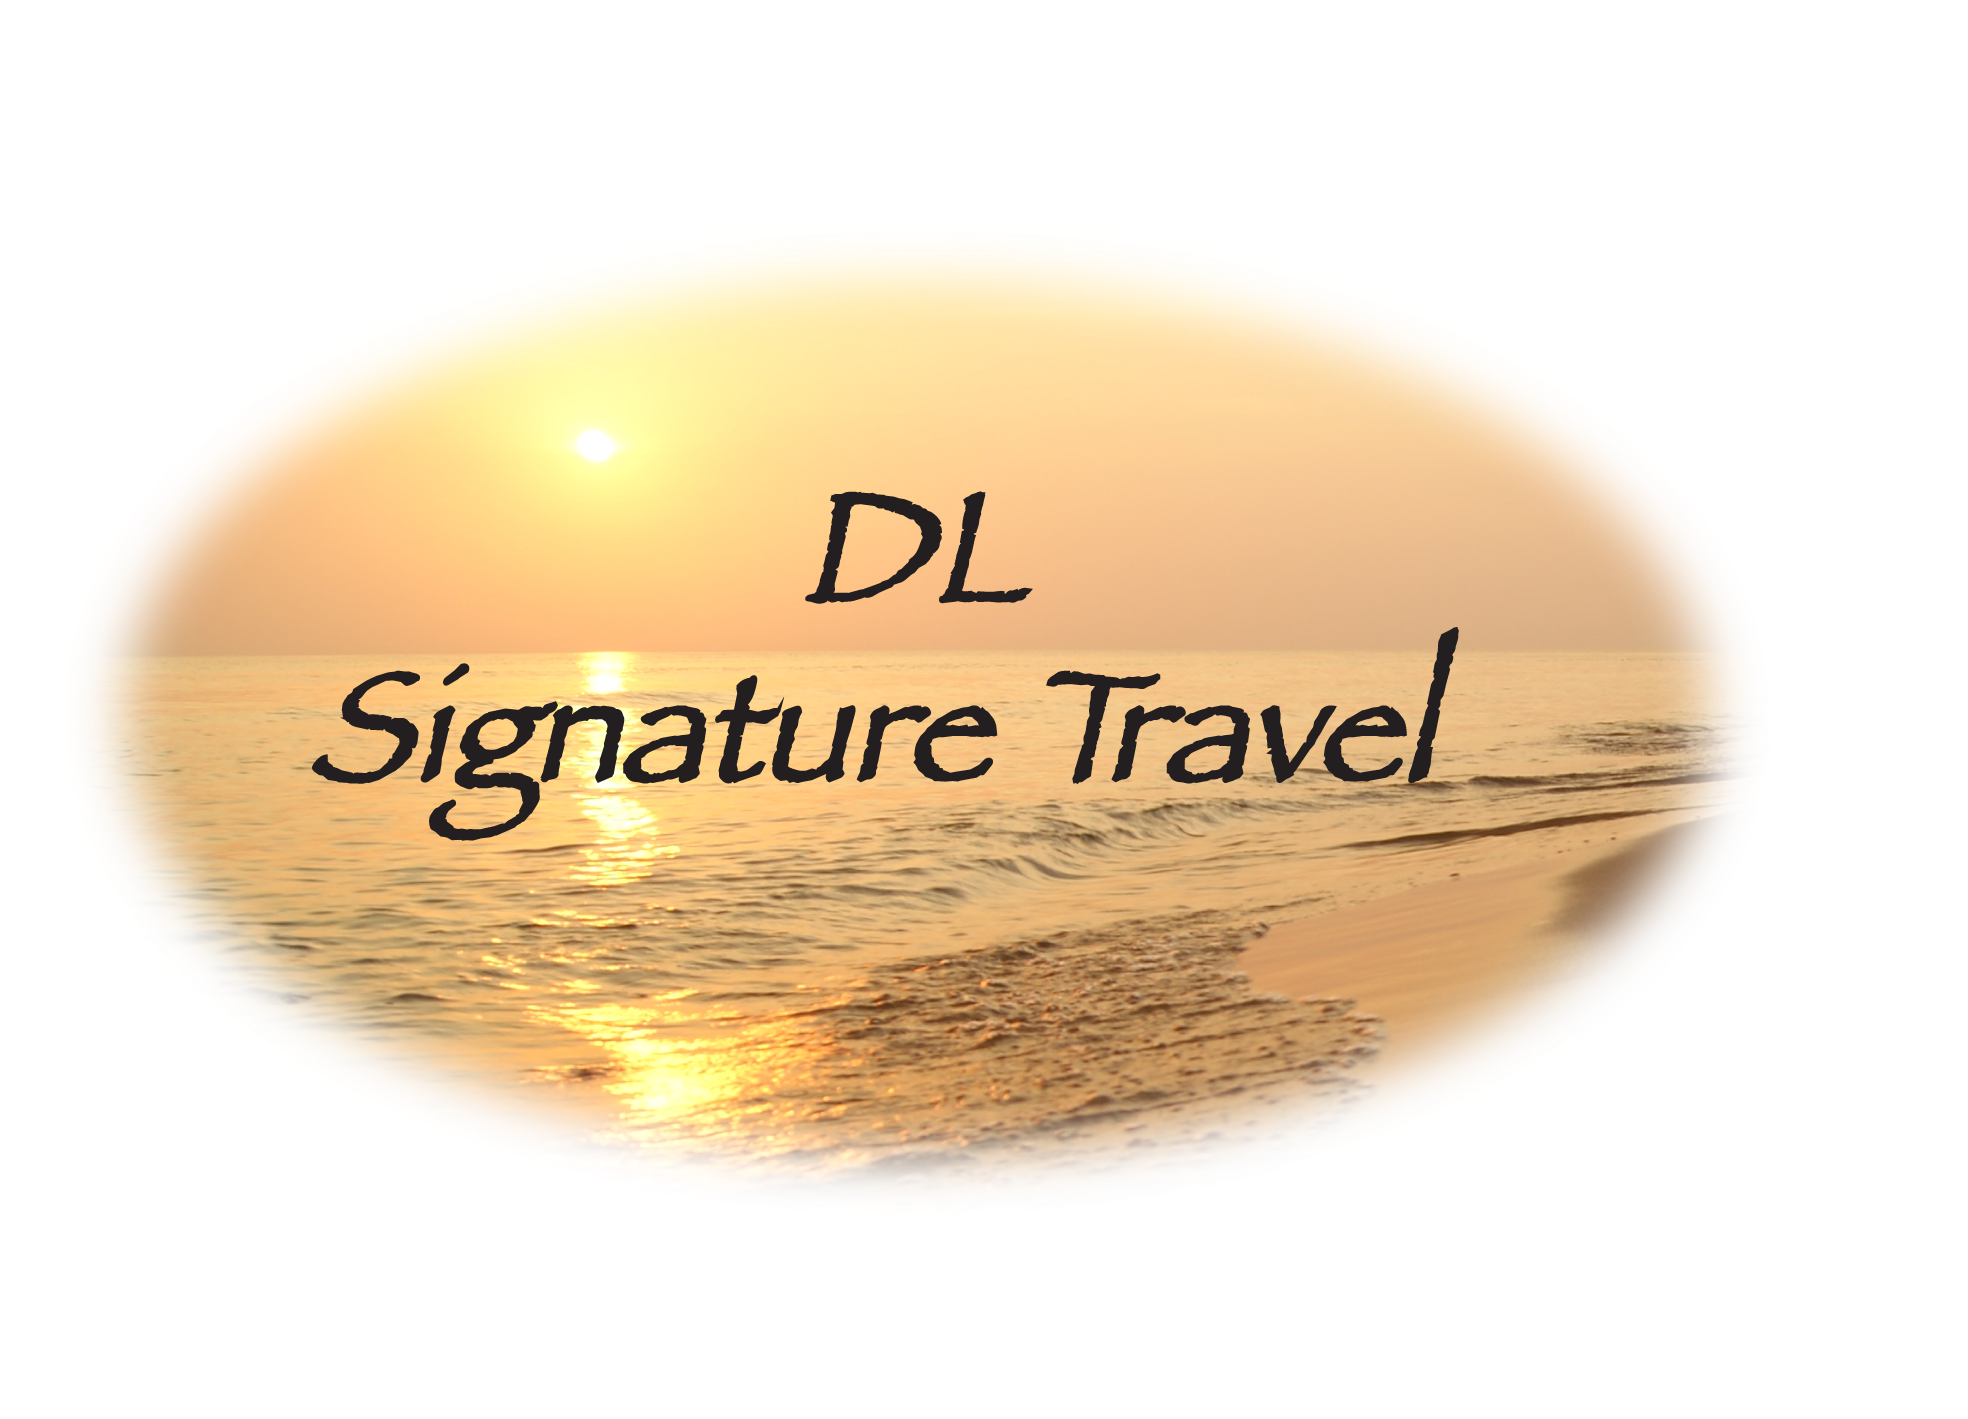 DL Signature Travel